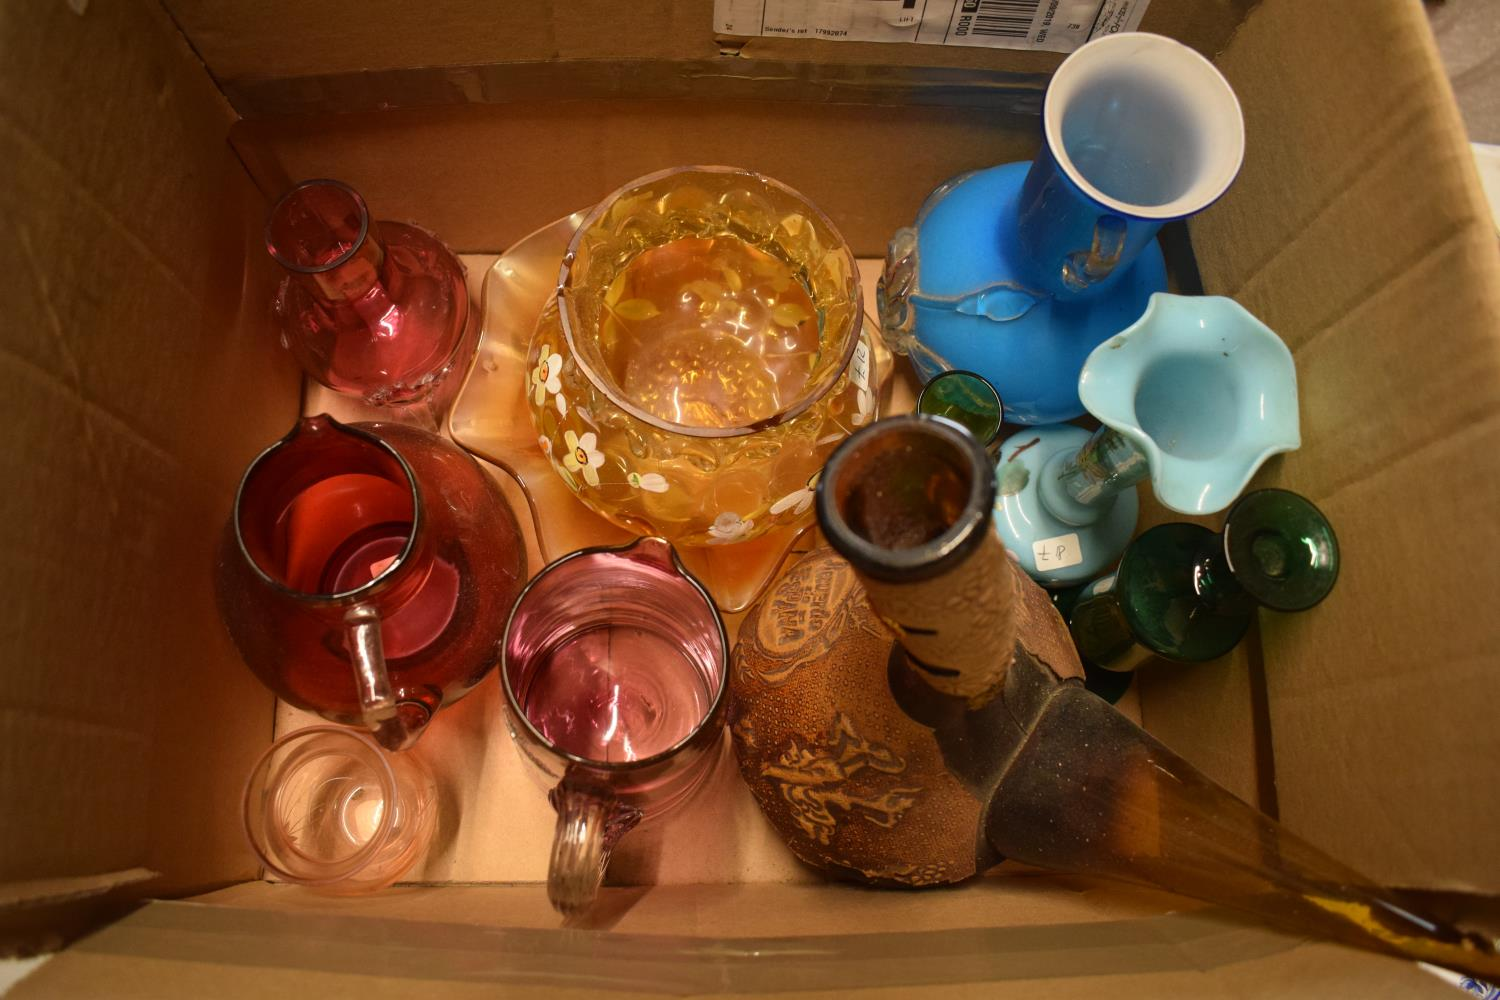 A collection of mainly 19th century glassware to include cranberry etc. Condition is mixed. No